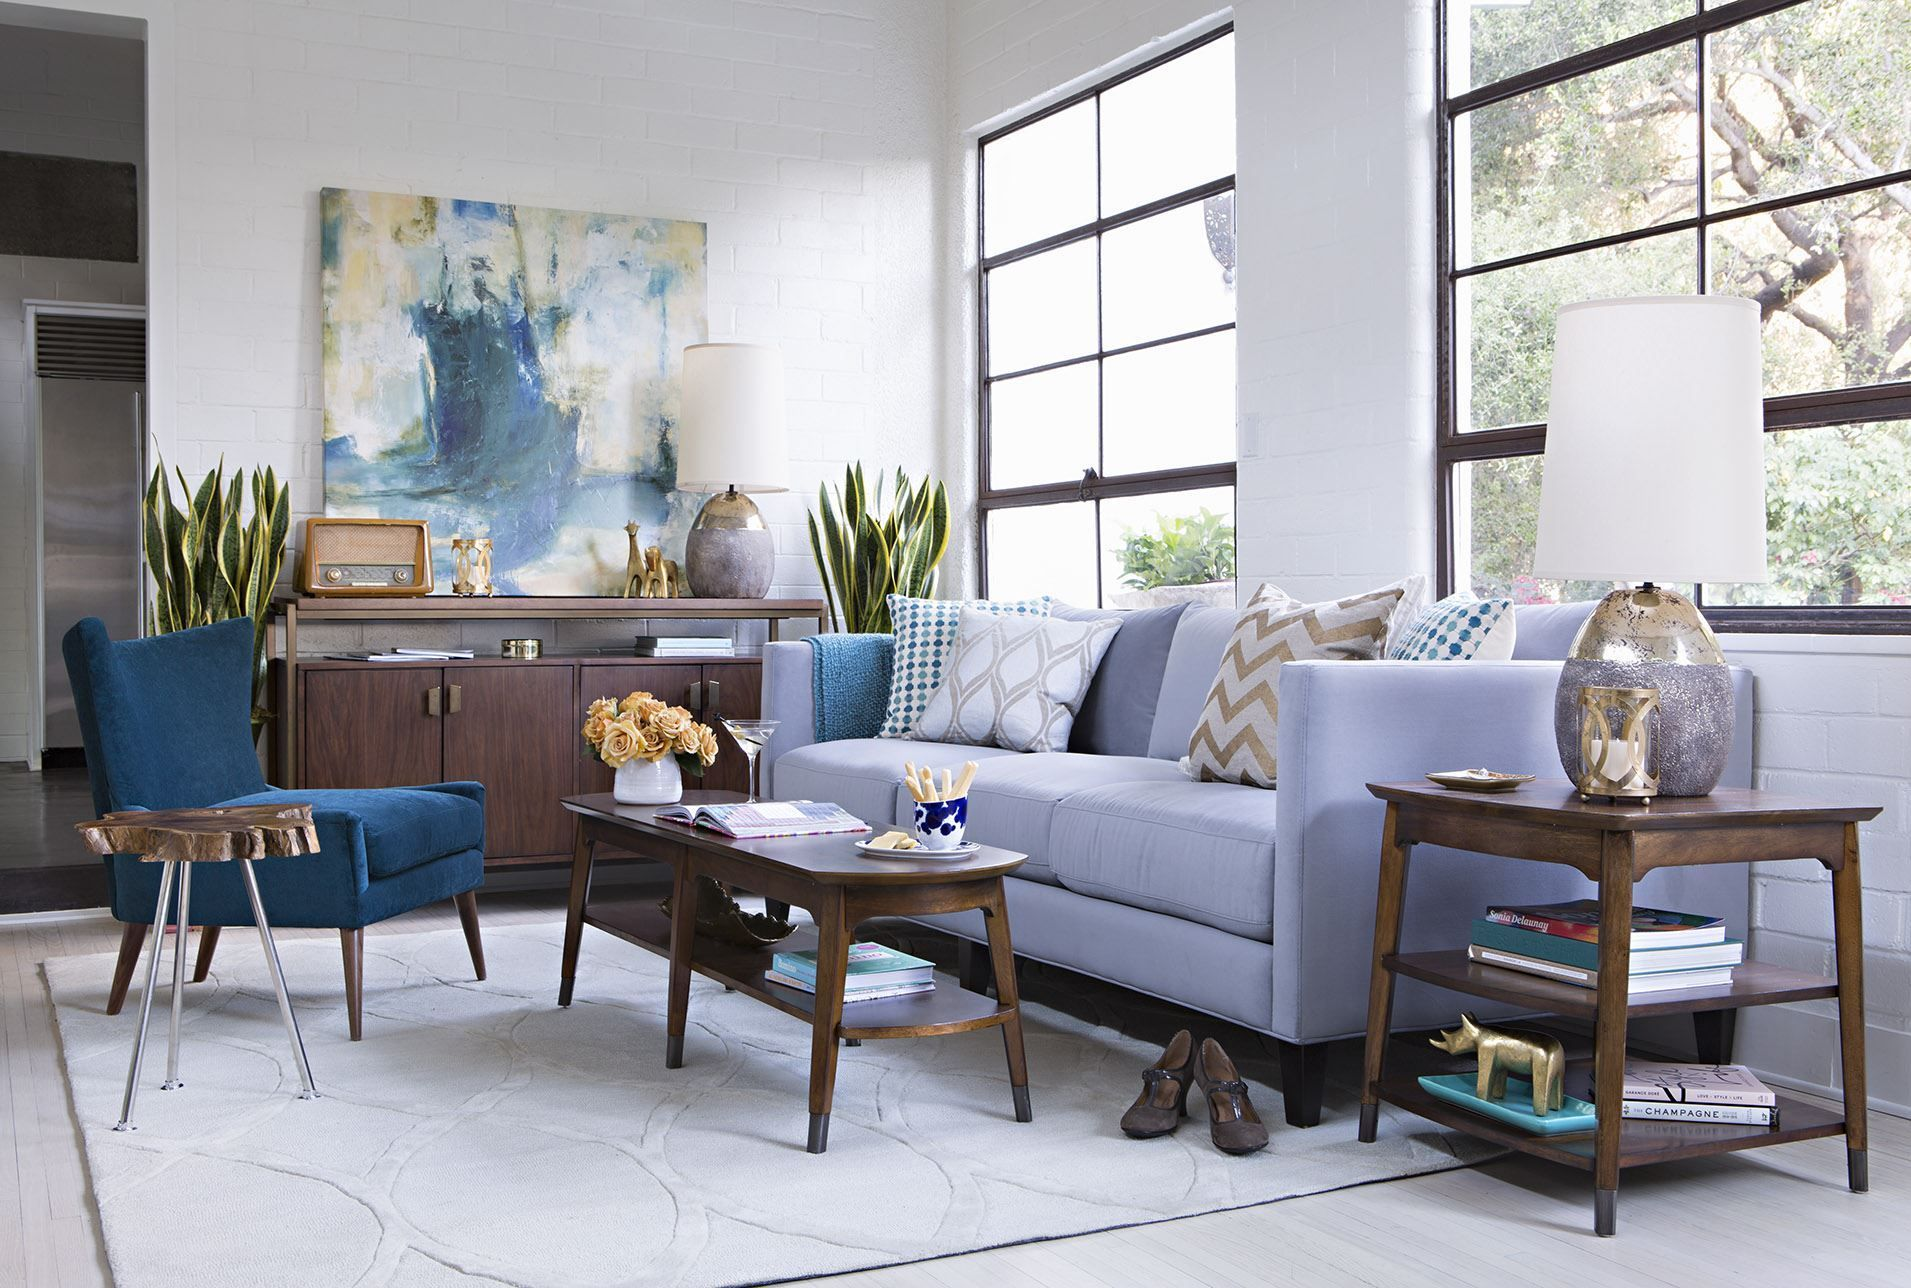 96X120 Rug-Athena Linen - Signature - Liked @ Homescapes Home Staging www.homescapes-sd.com #contemporarylivingroom